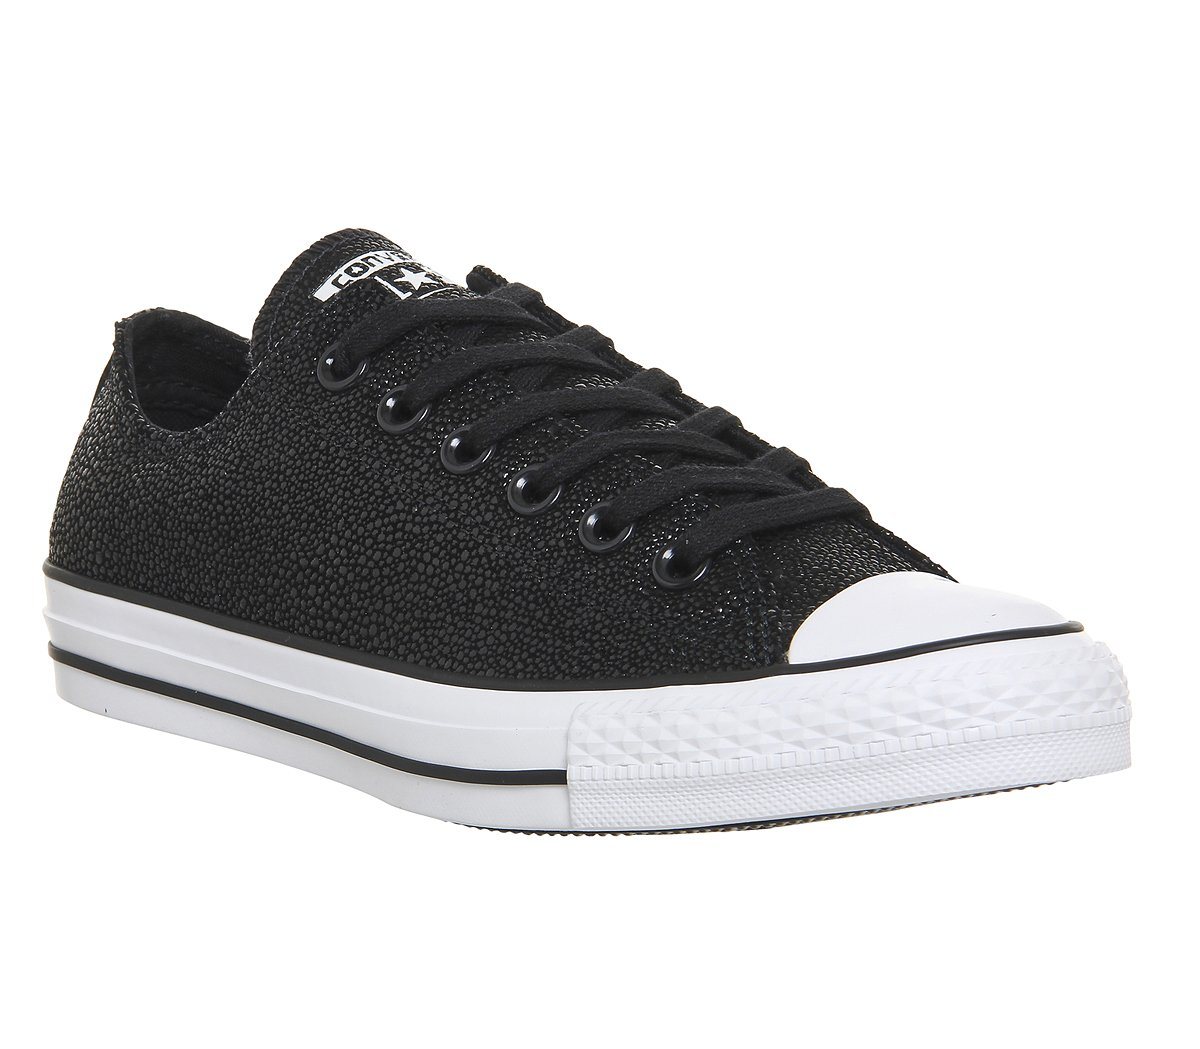 Converse Womens All Star Ox Leather Embossed Skate Shoes B0193UNRE8 6 B(M) US|Stingray Metallic Black